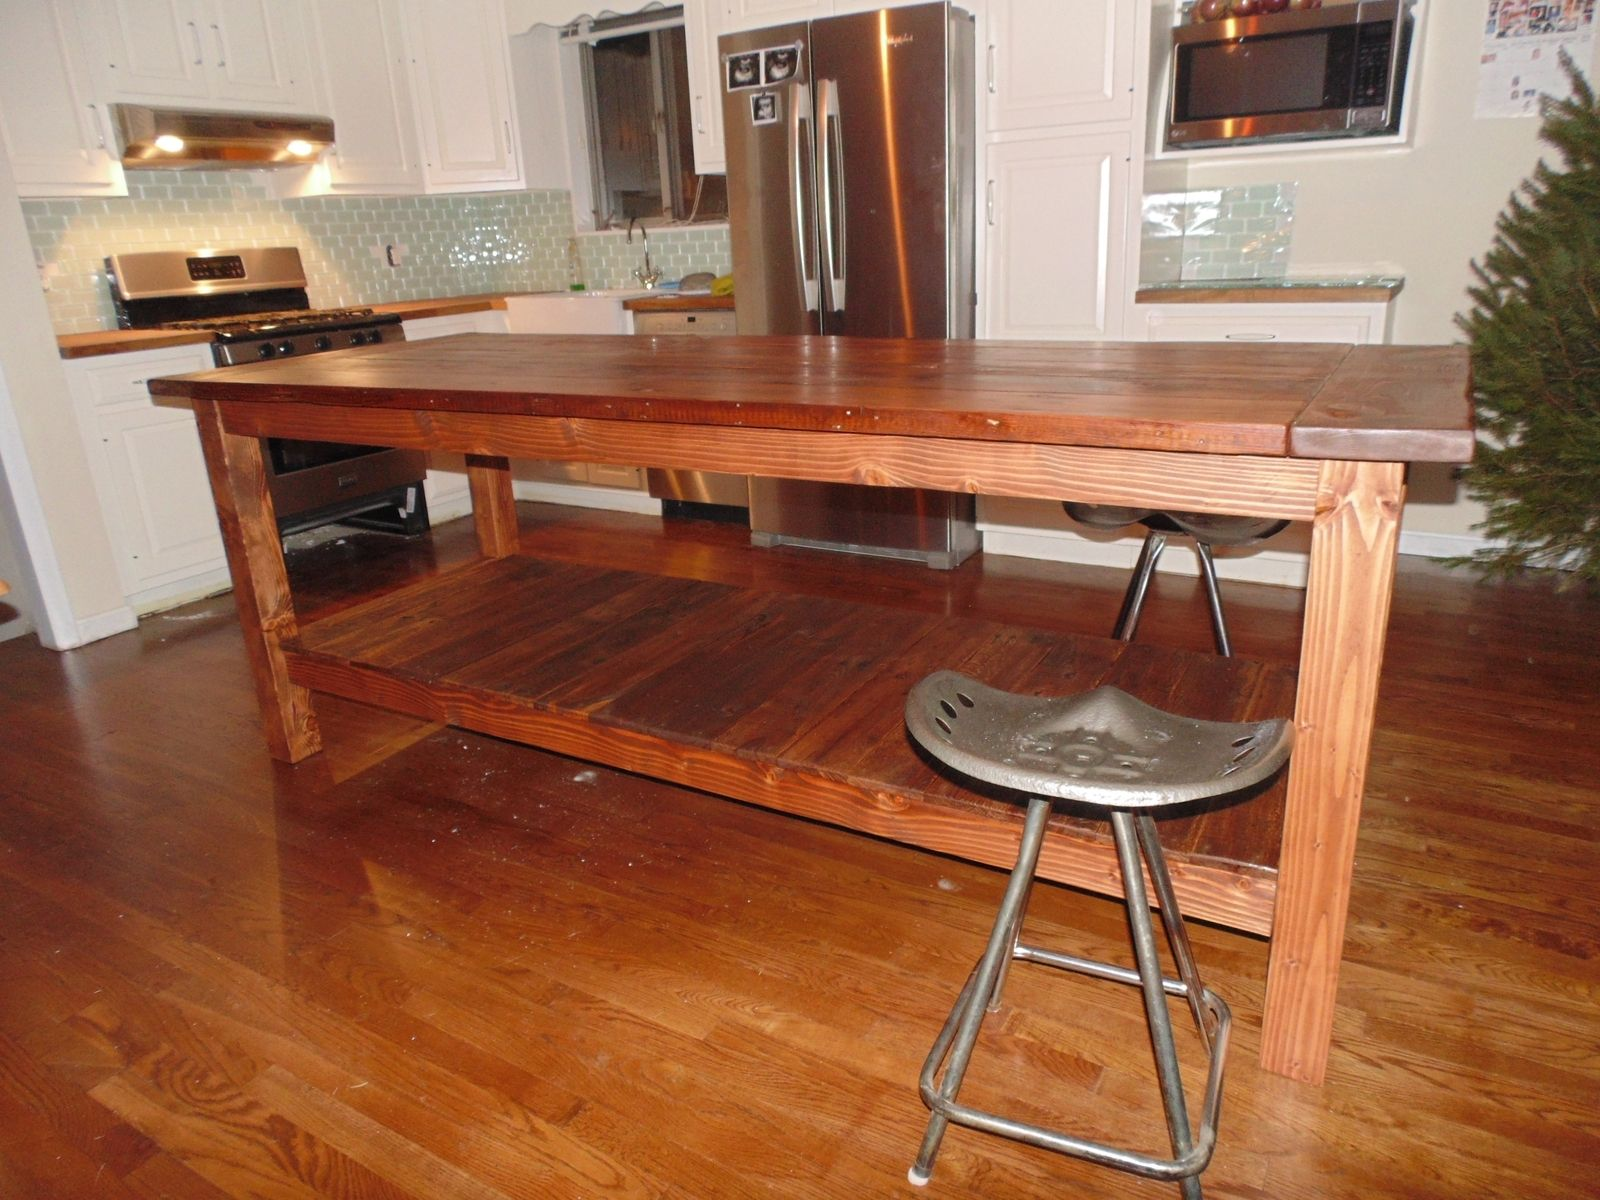 Fullsize Of Cabinets For Kitchen Island